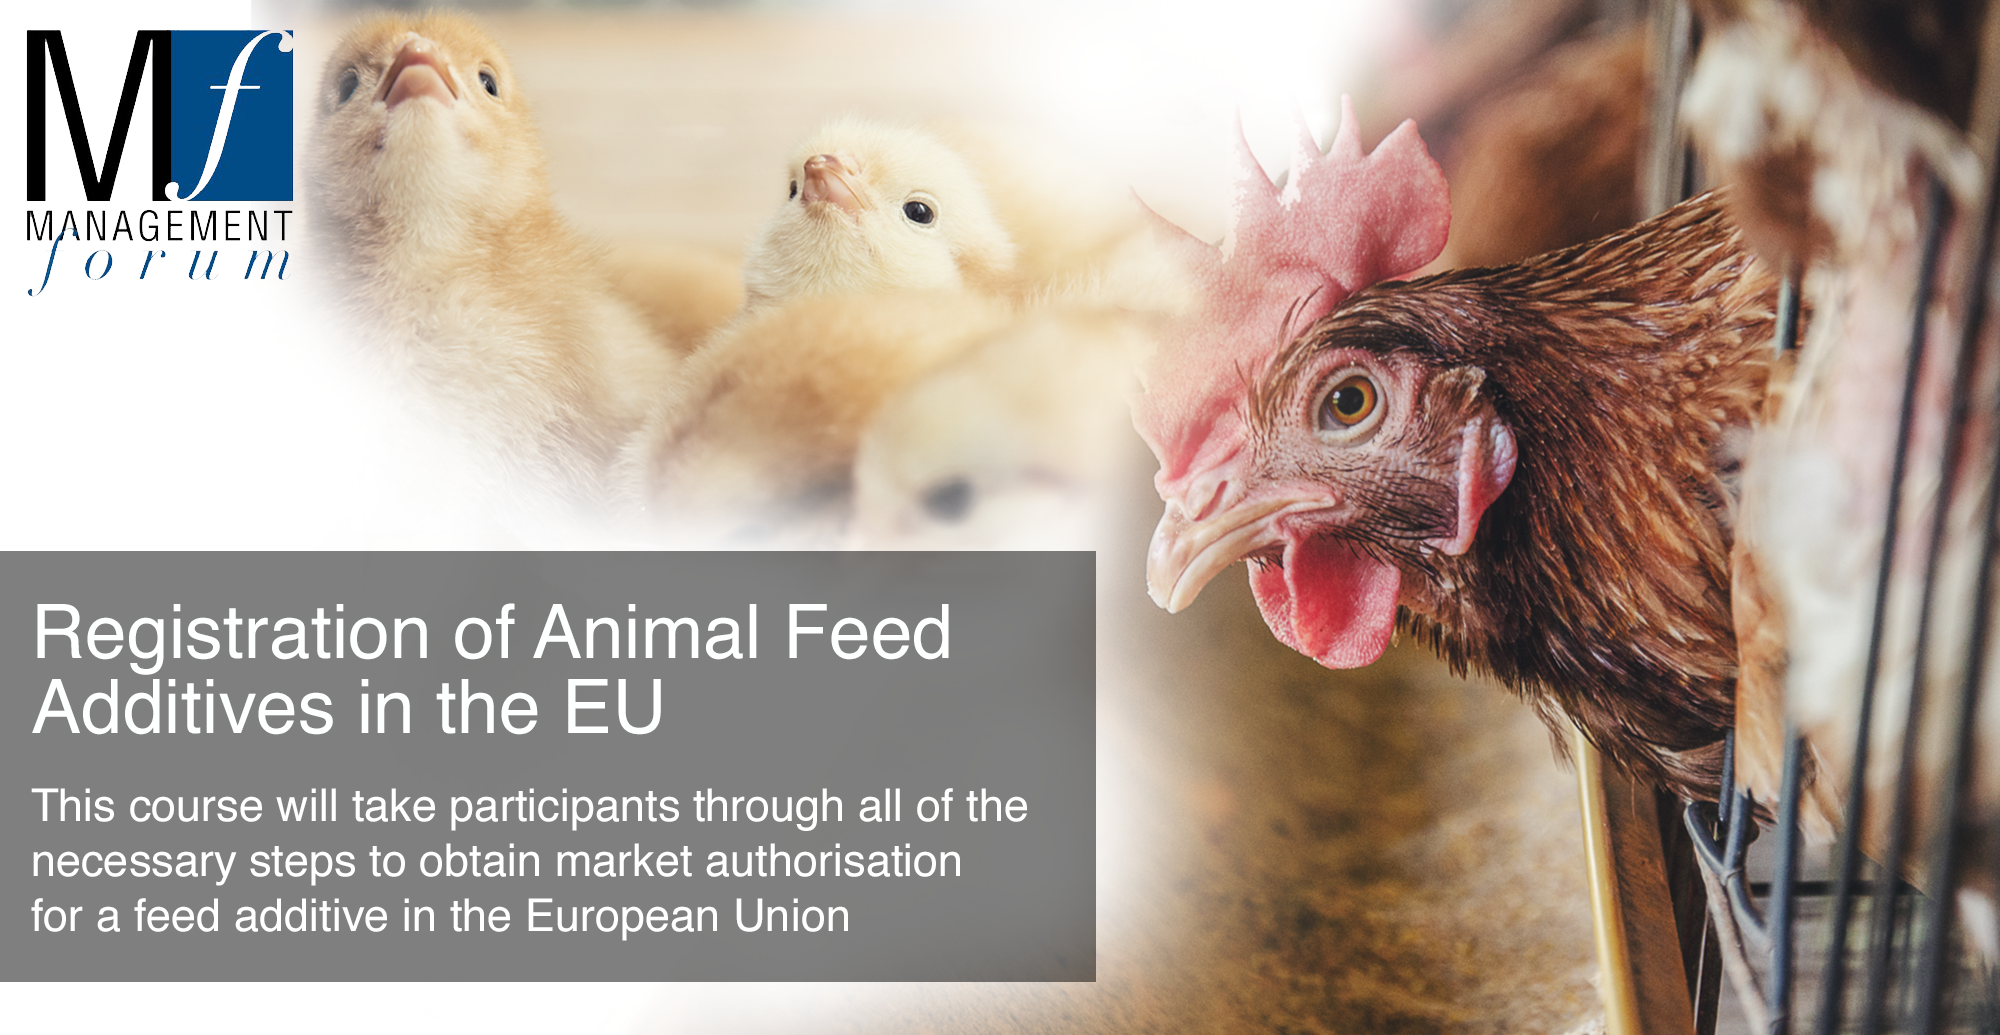 Two-day practical course with interactive workshops: Registration of Animal Feed Additives in the EU. 5-6 June 2019